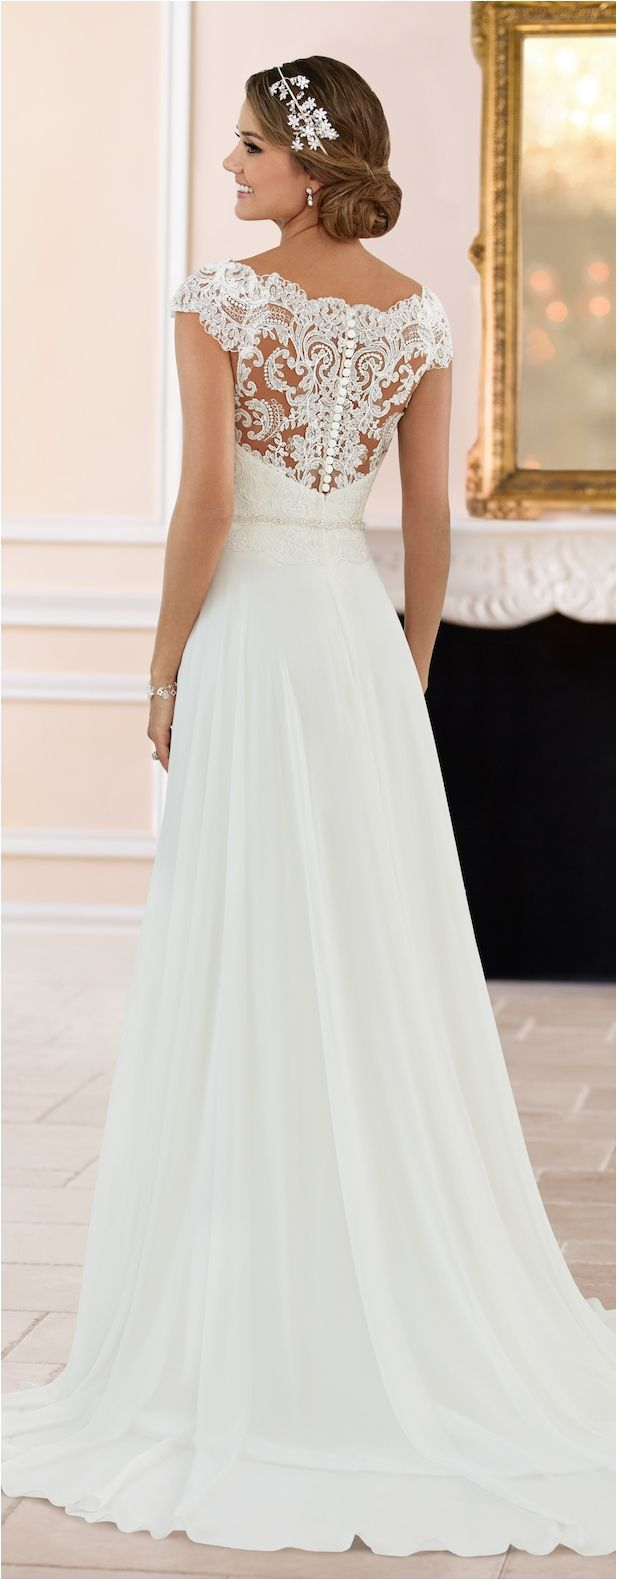 100+ Best Inspirations Lace Wedding Dresses For You | Lace wedding ...